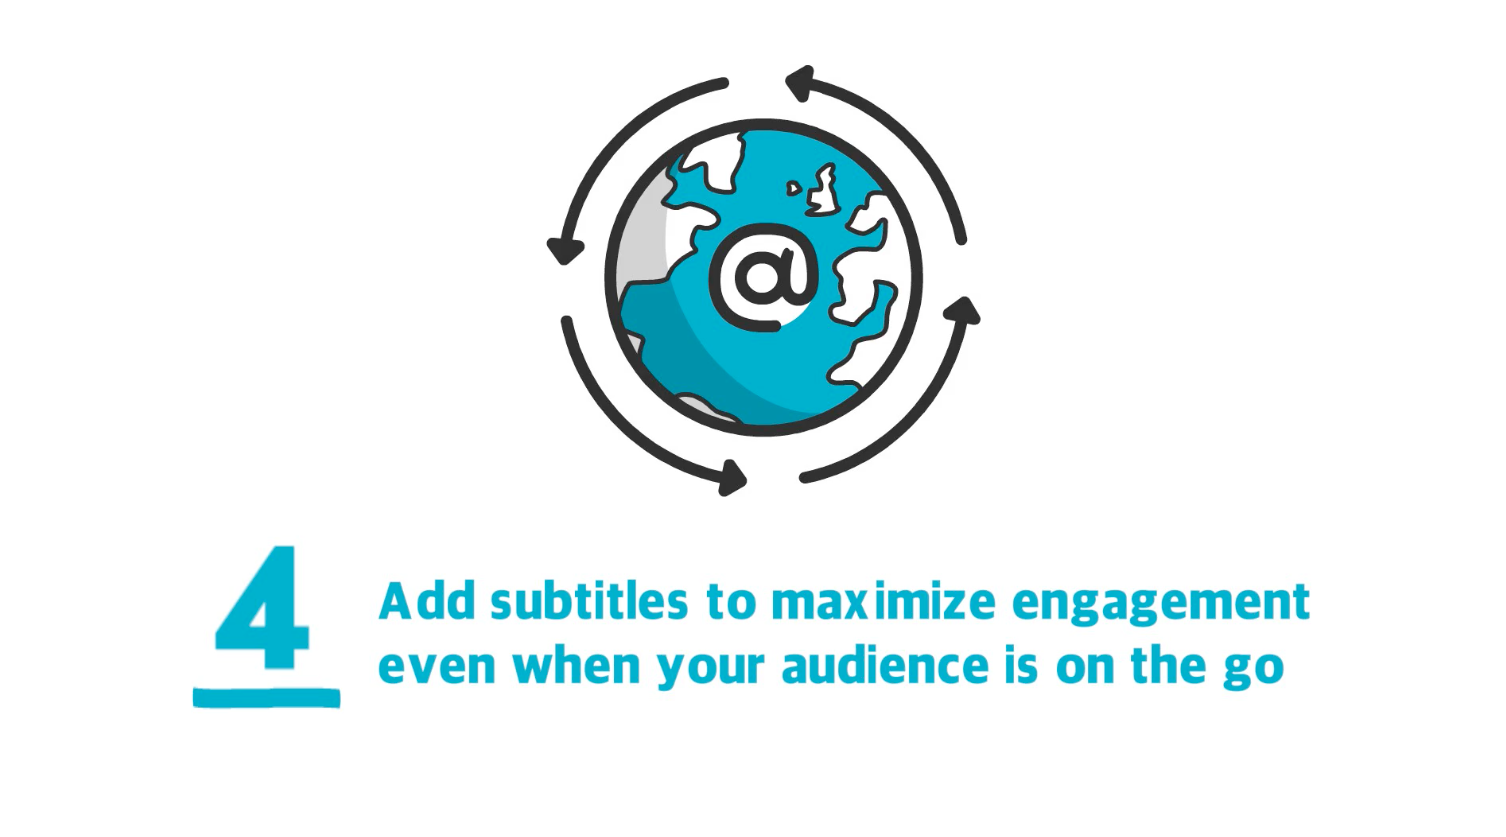 Add subtitles to your videos to maximize engagement